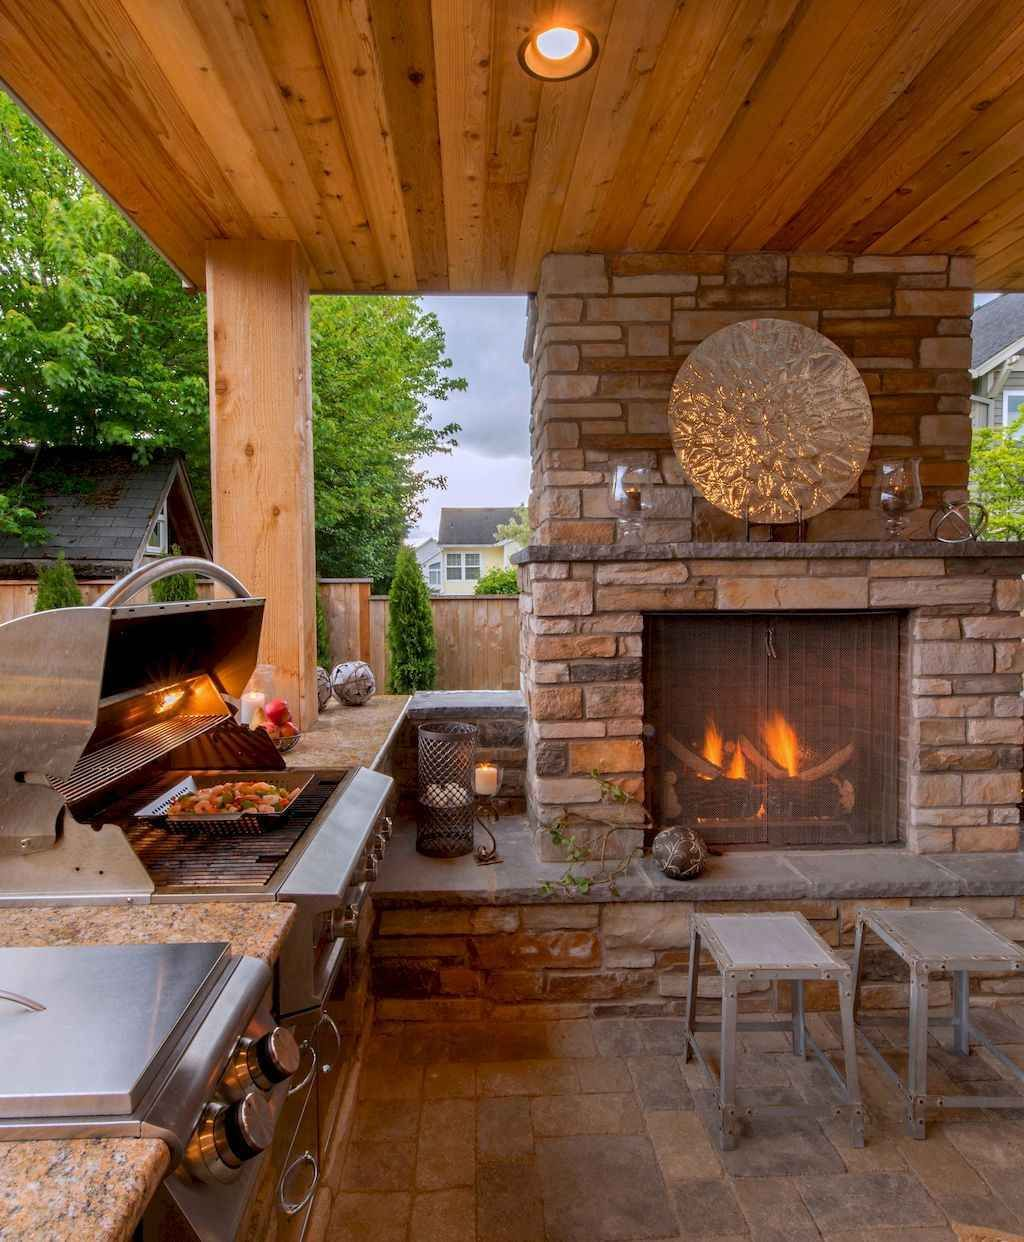 Incredible Kitchen Remodeling Ideas: 01 Incredible Outdoor Kitchen Design Ideas For Summer